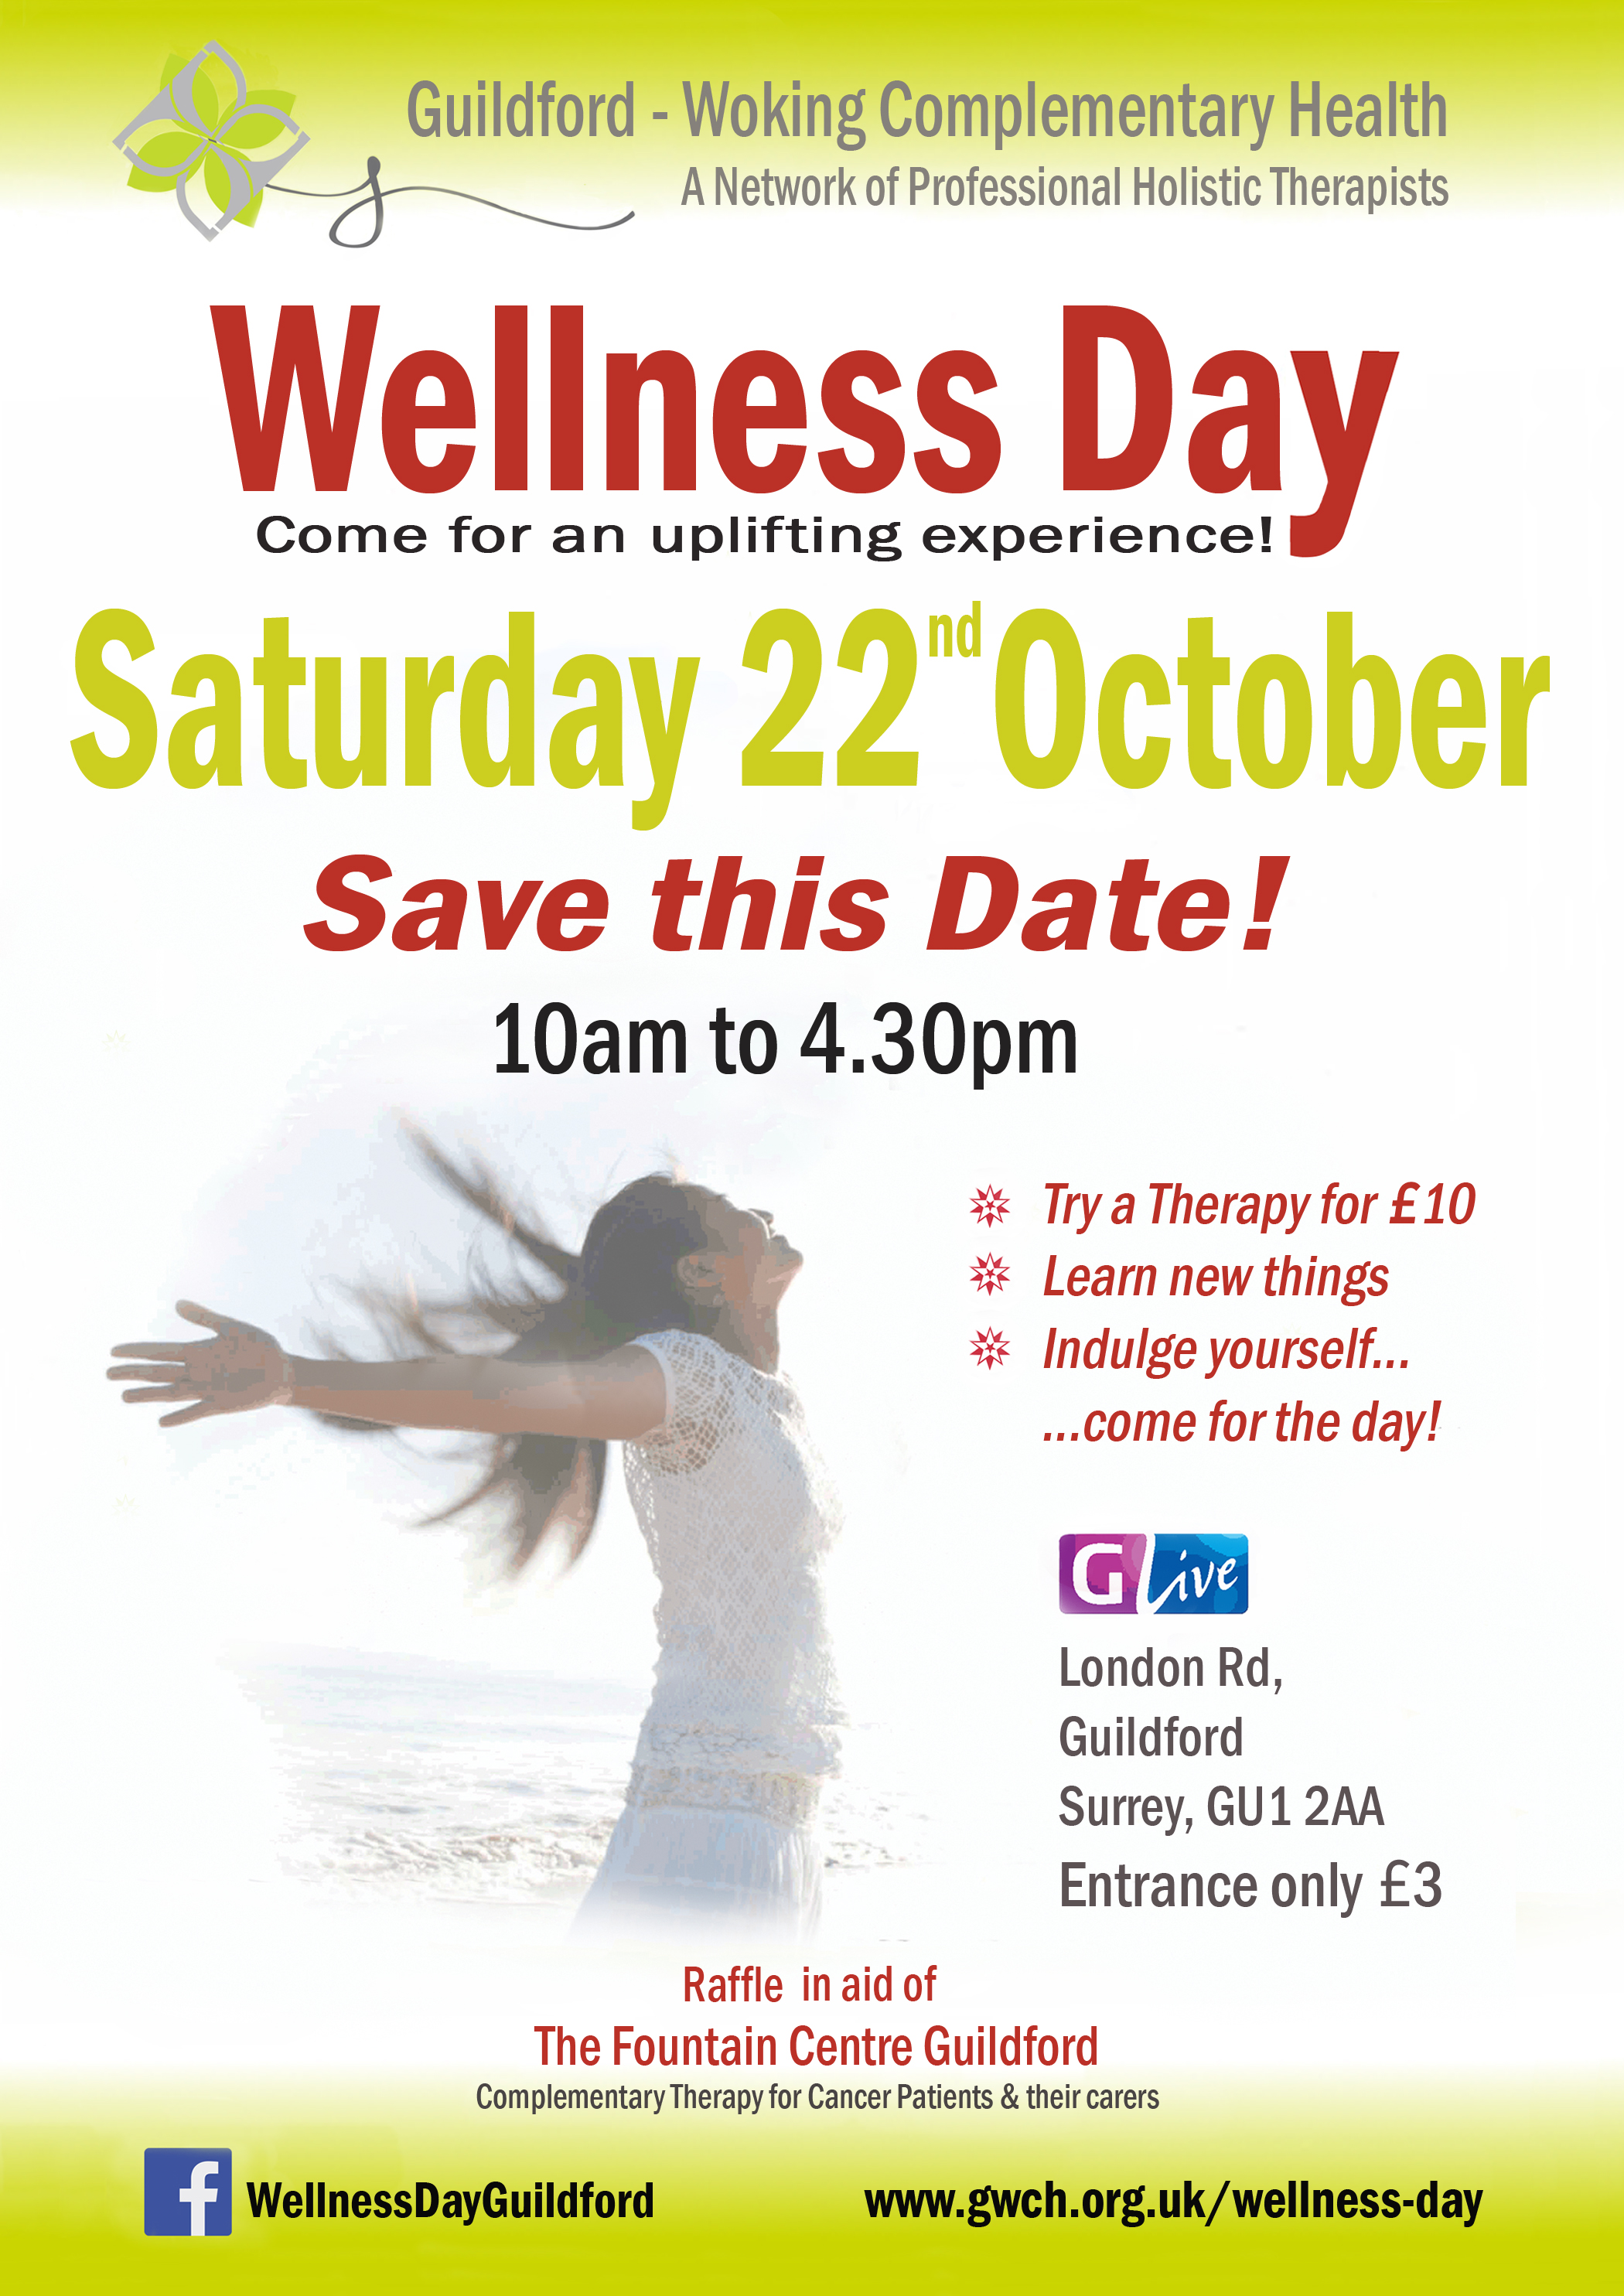 guildford surrey glive holistic and wellness event www.susanemma.com